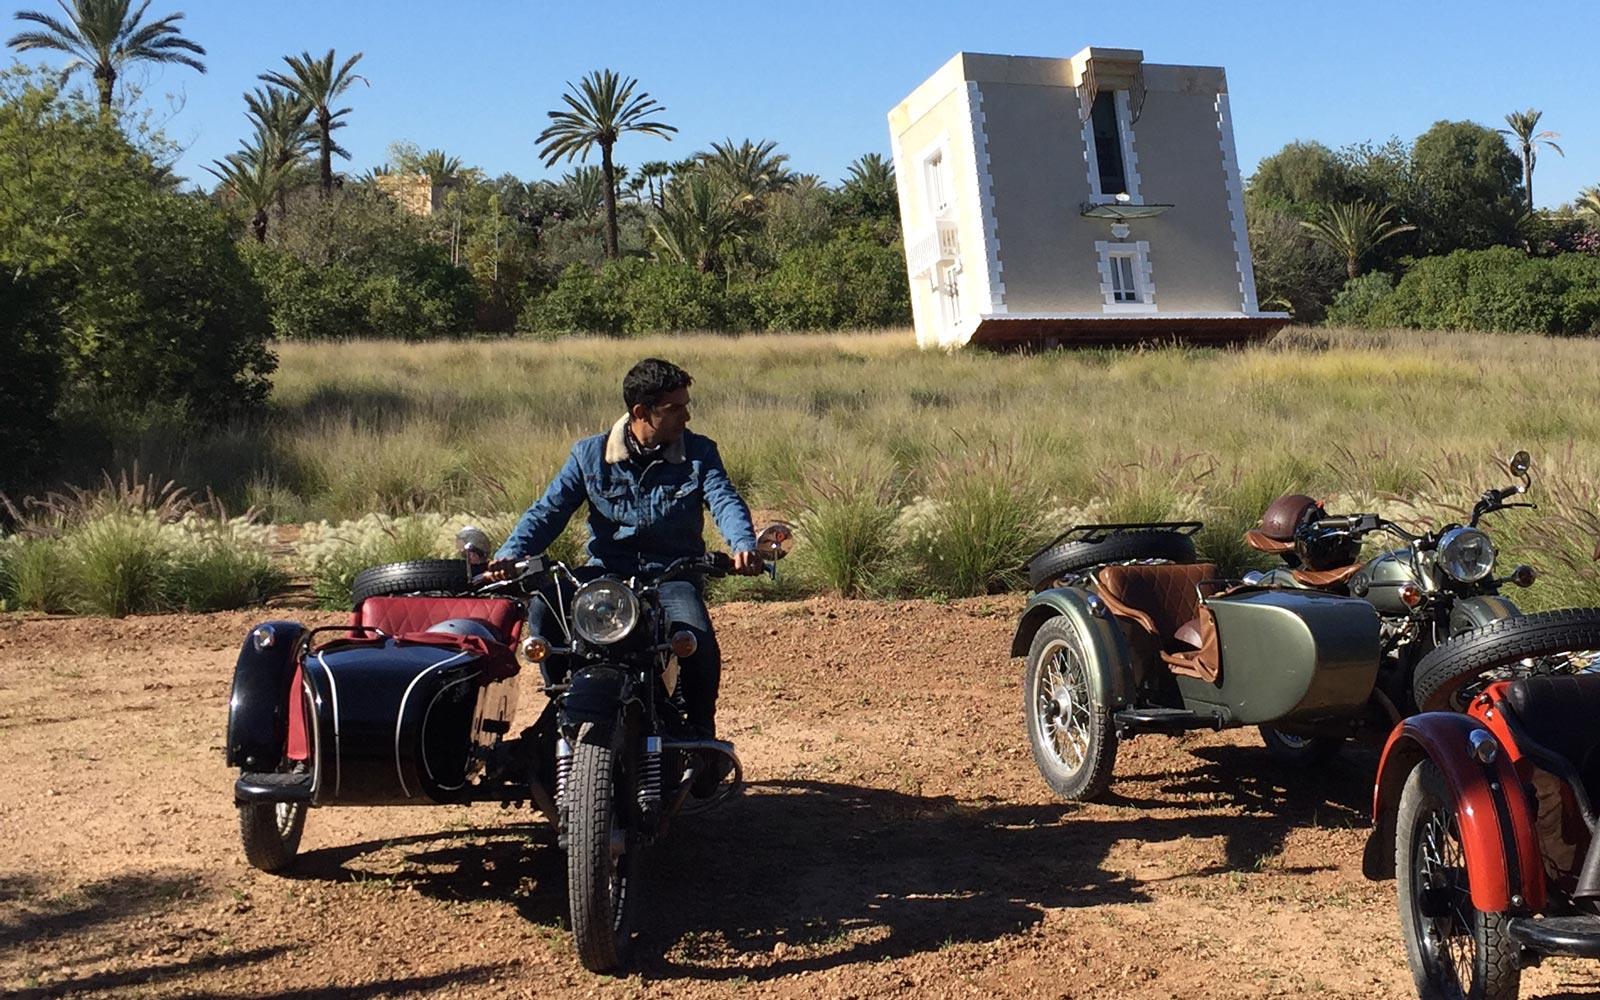 Sidecar Tour with Thomas in Marrakech